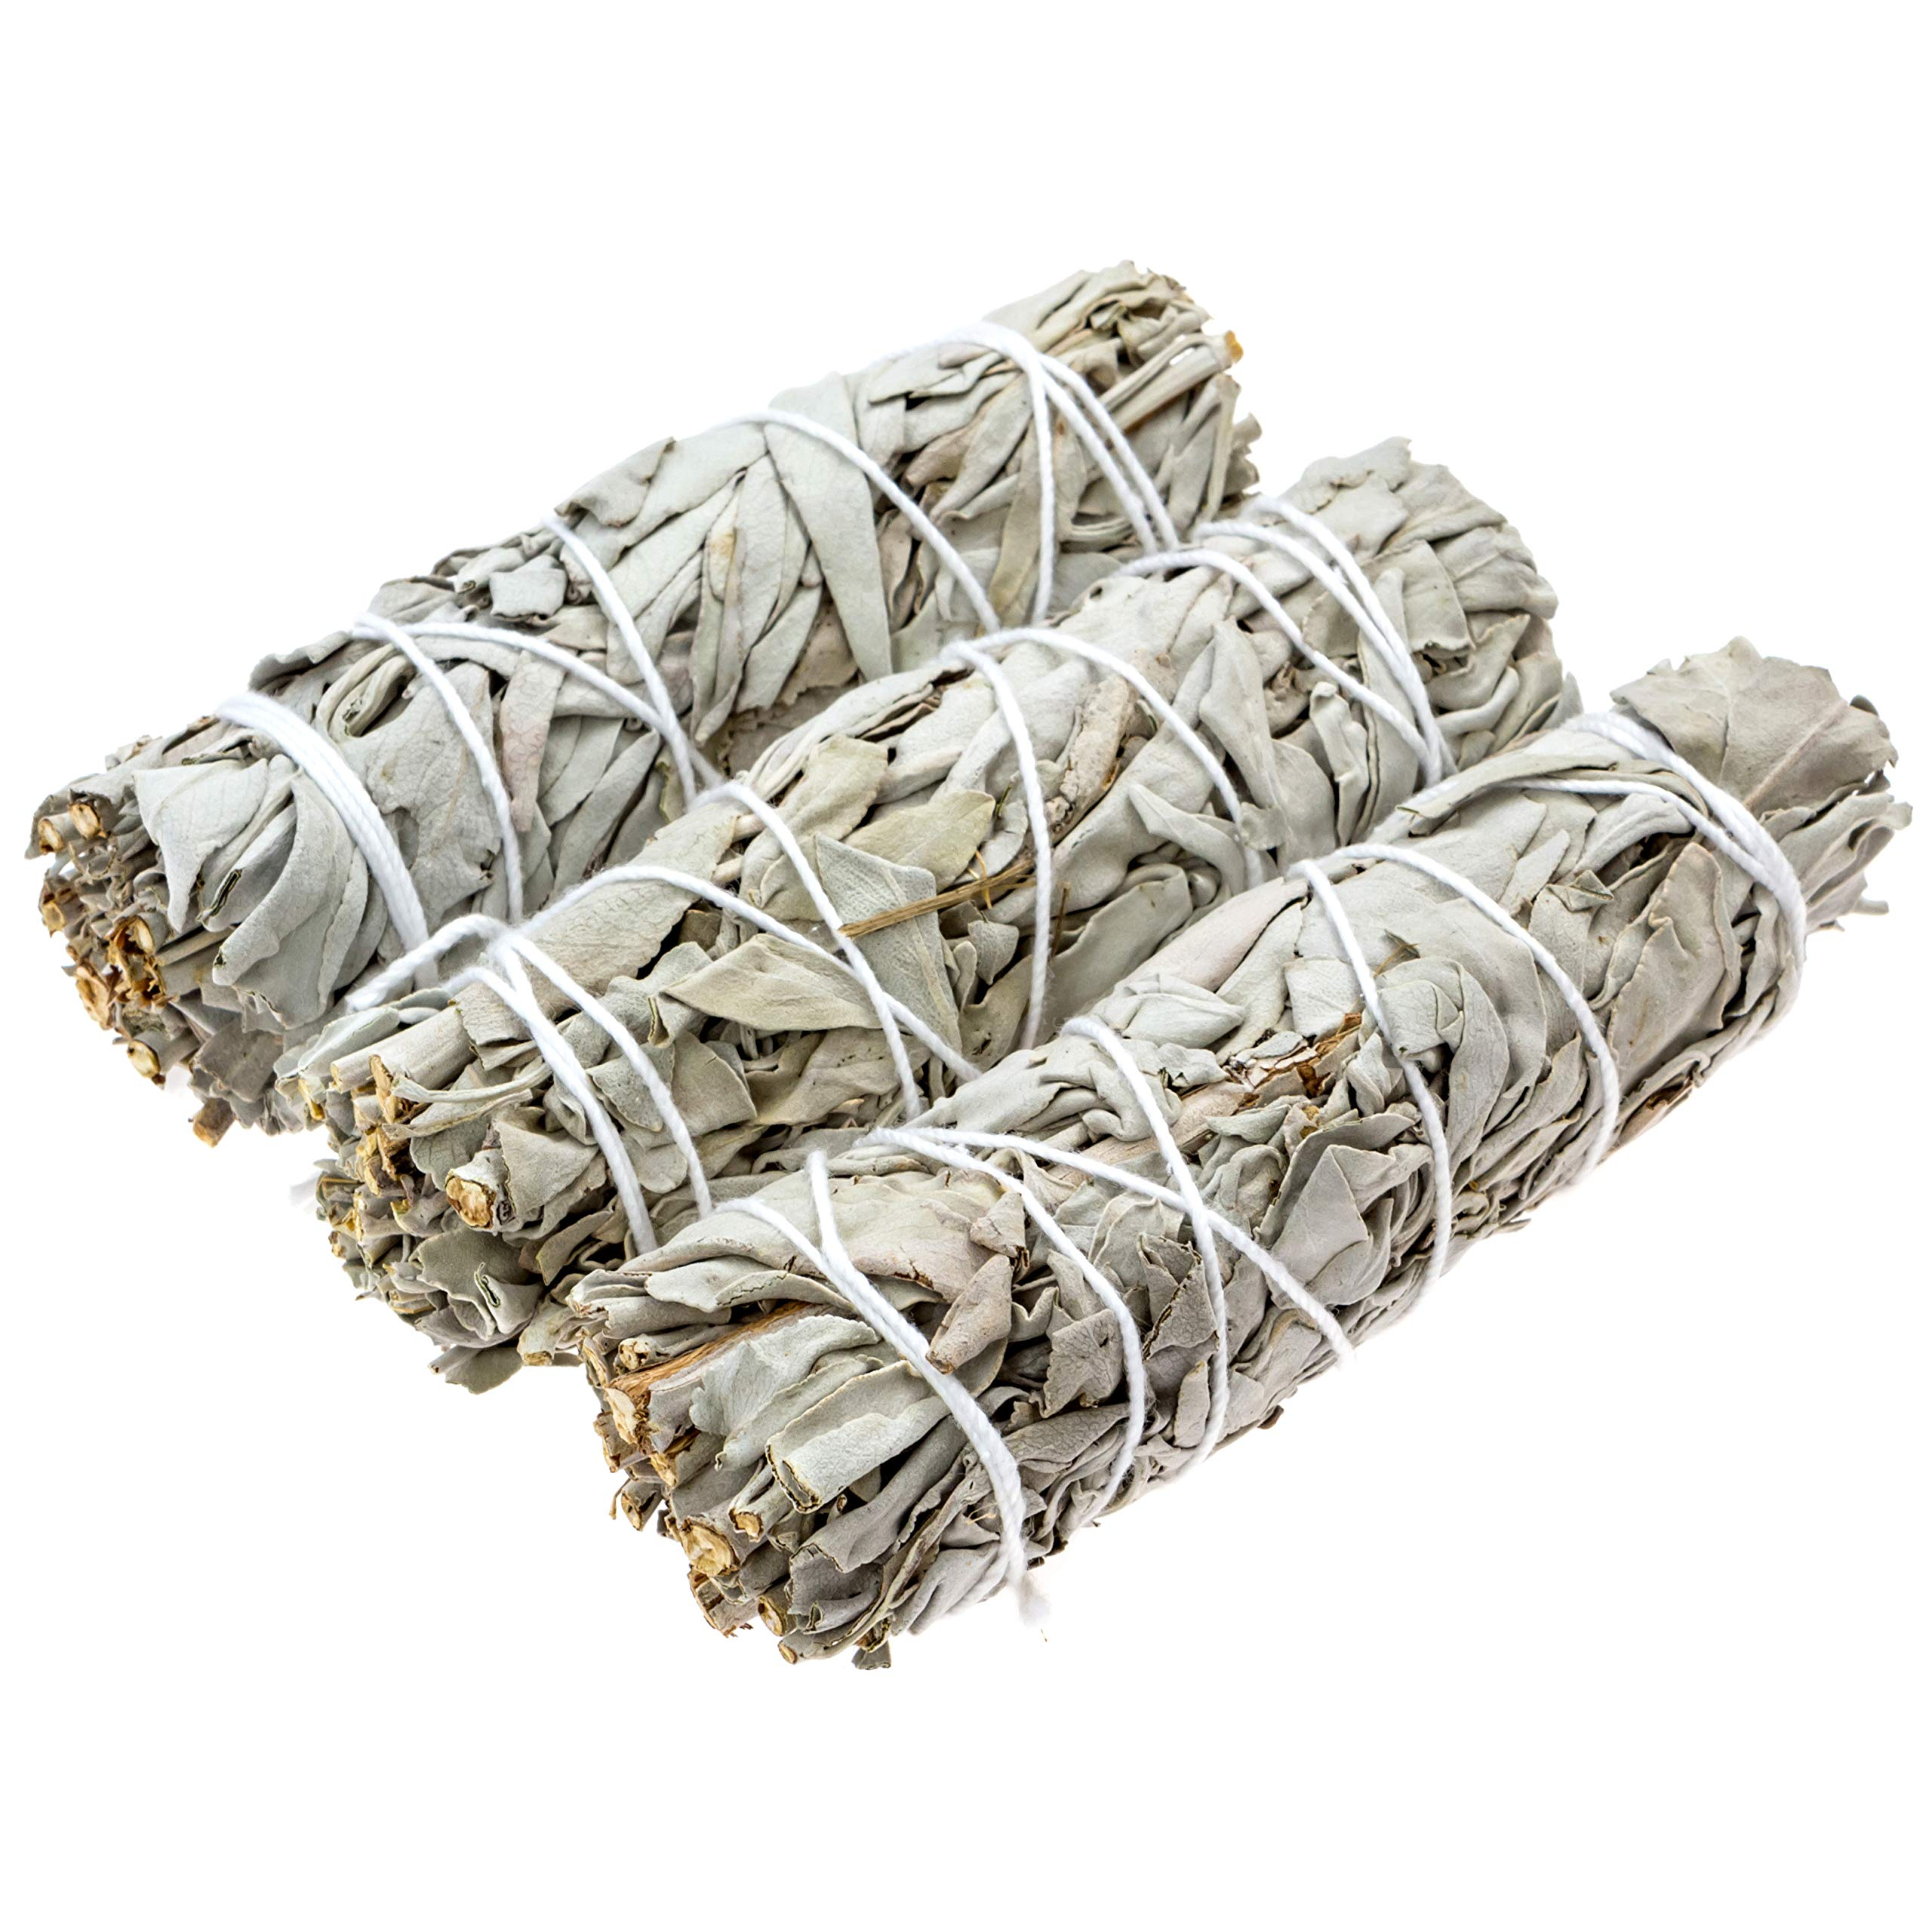 Big Lost Goods 3 Pack, Premium White Sage Smudge Sticks, Mini Bundles 4-5'' Long, Organically Grown in California. Use for: smudging, Energy Cleansing, and Meditation by Big Lost Goods (Image #1)